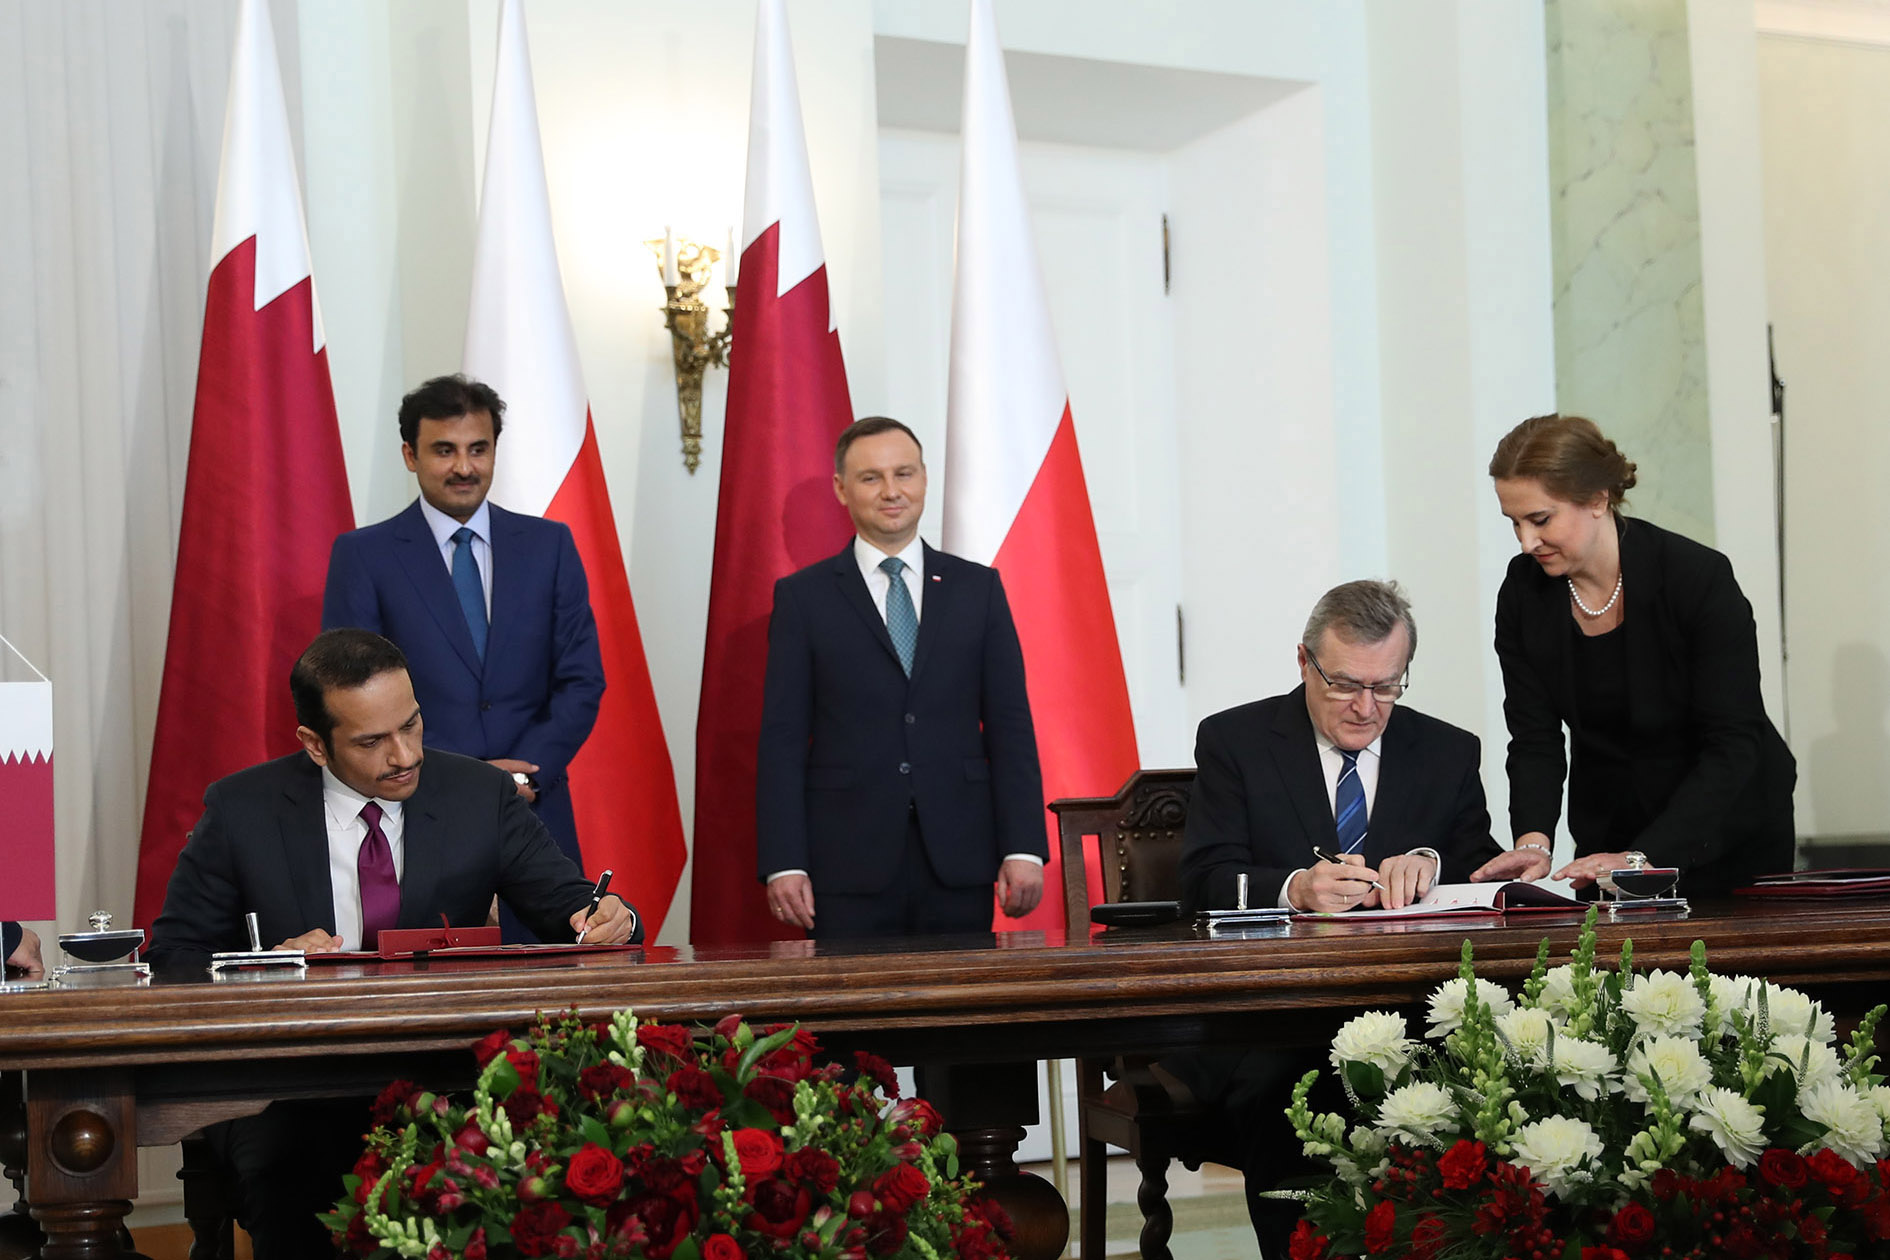 Hh The Amir Poland President Attend Signing Agreements Between The